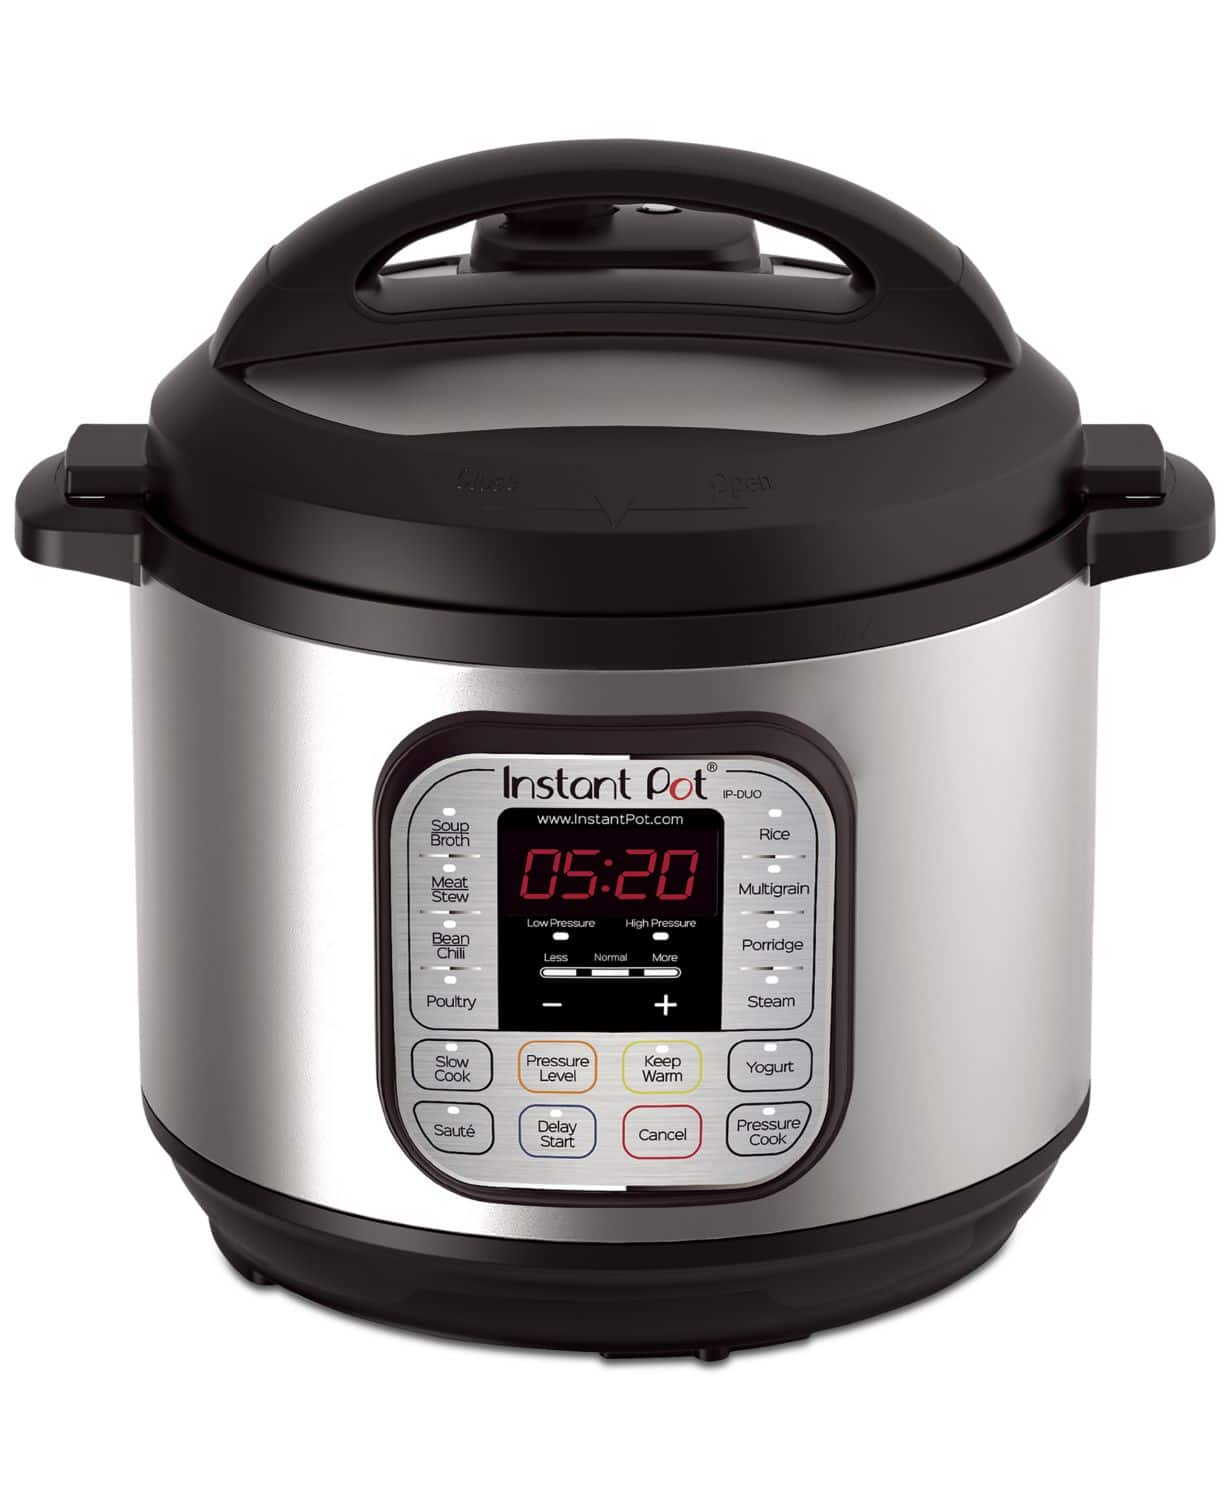 DUO80 7-in-1 Programmable Pressure Cooker 8-Qt. $64.99